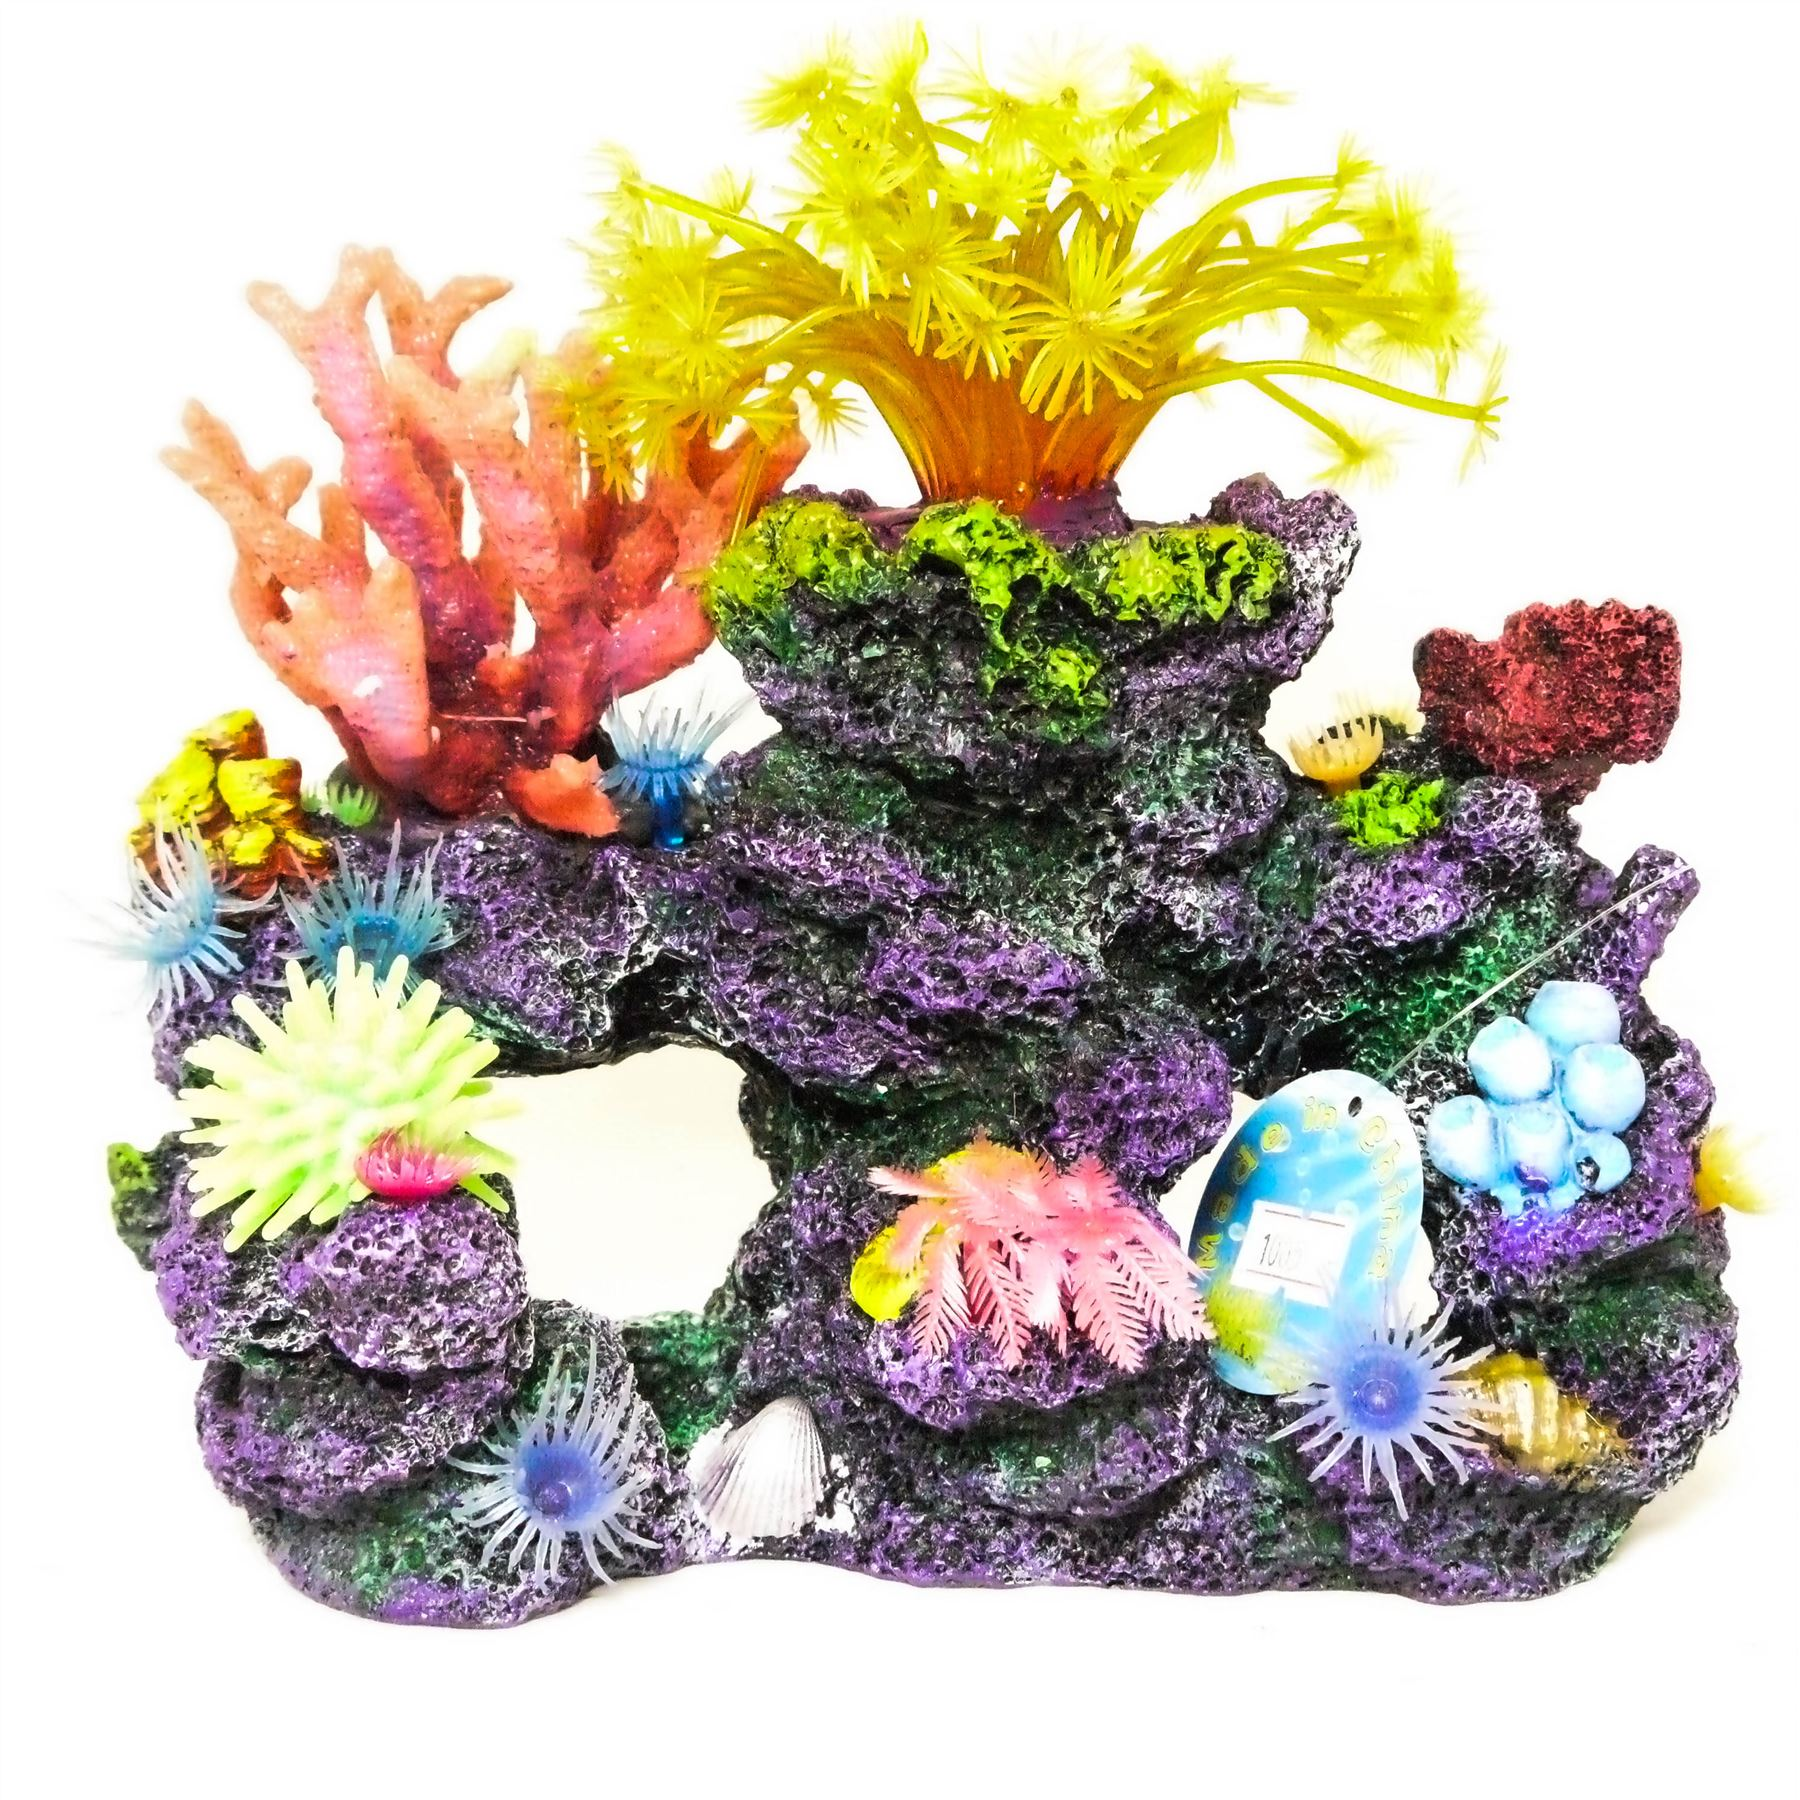 Realistic artificial aquarium coral reef extra large polyp for Artificial coral reef aquarium decoration inserts